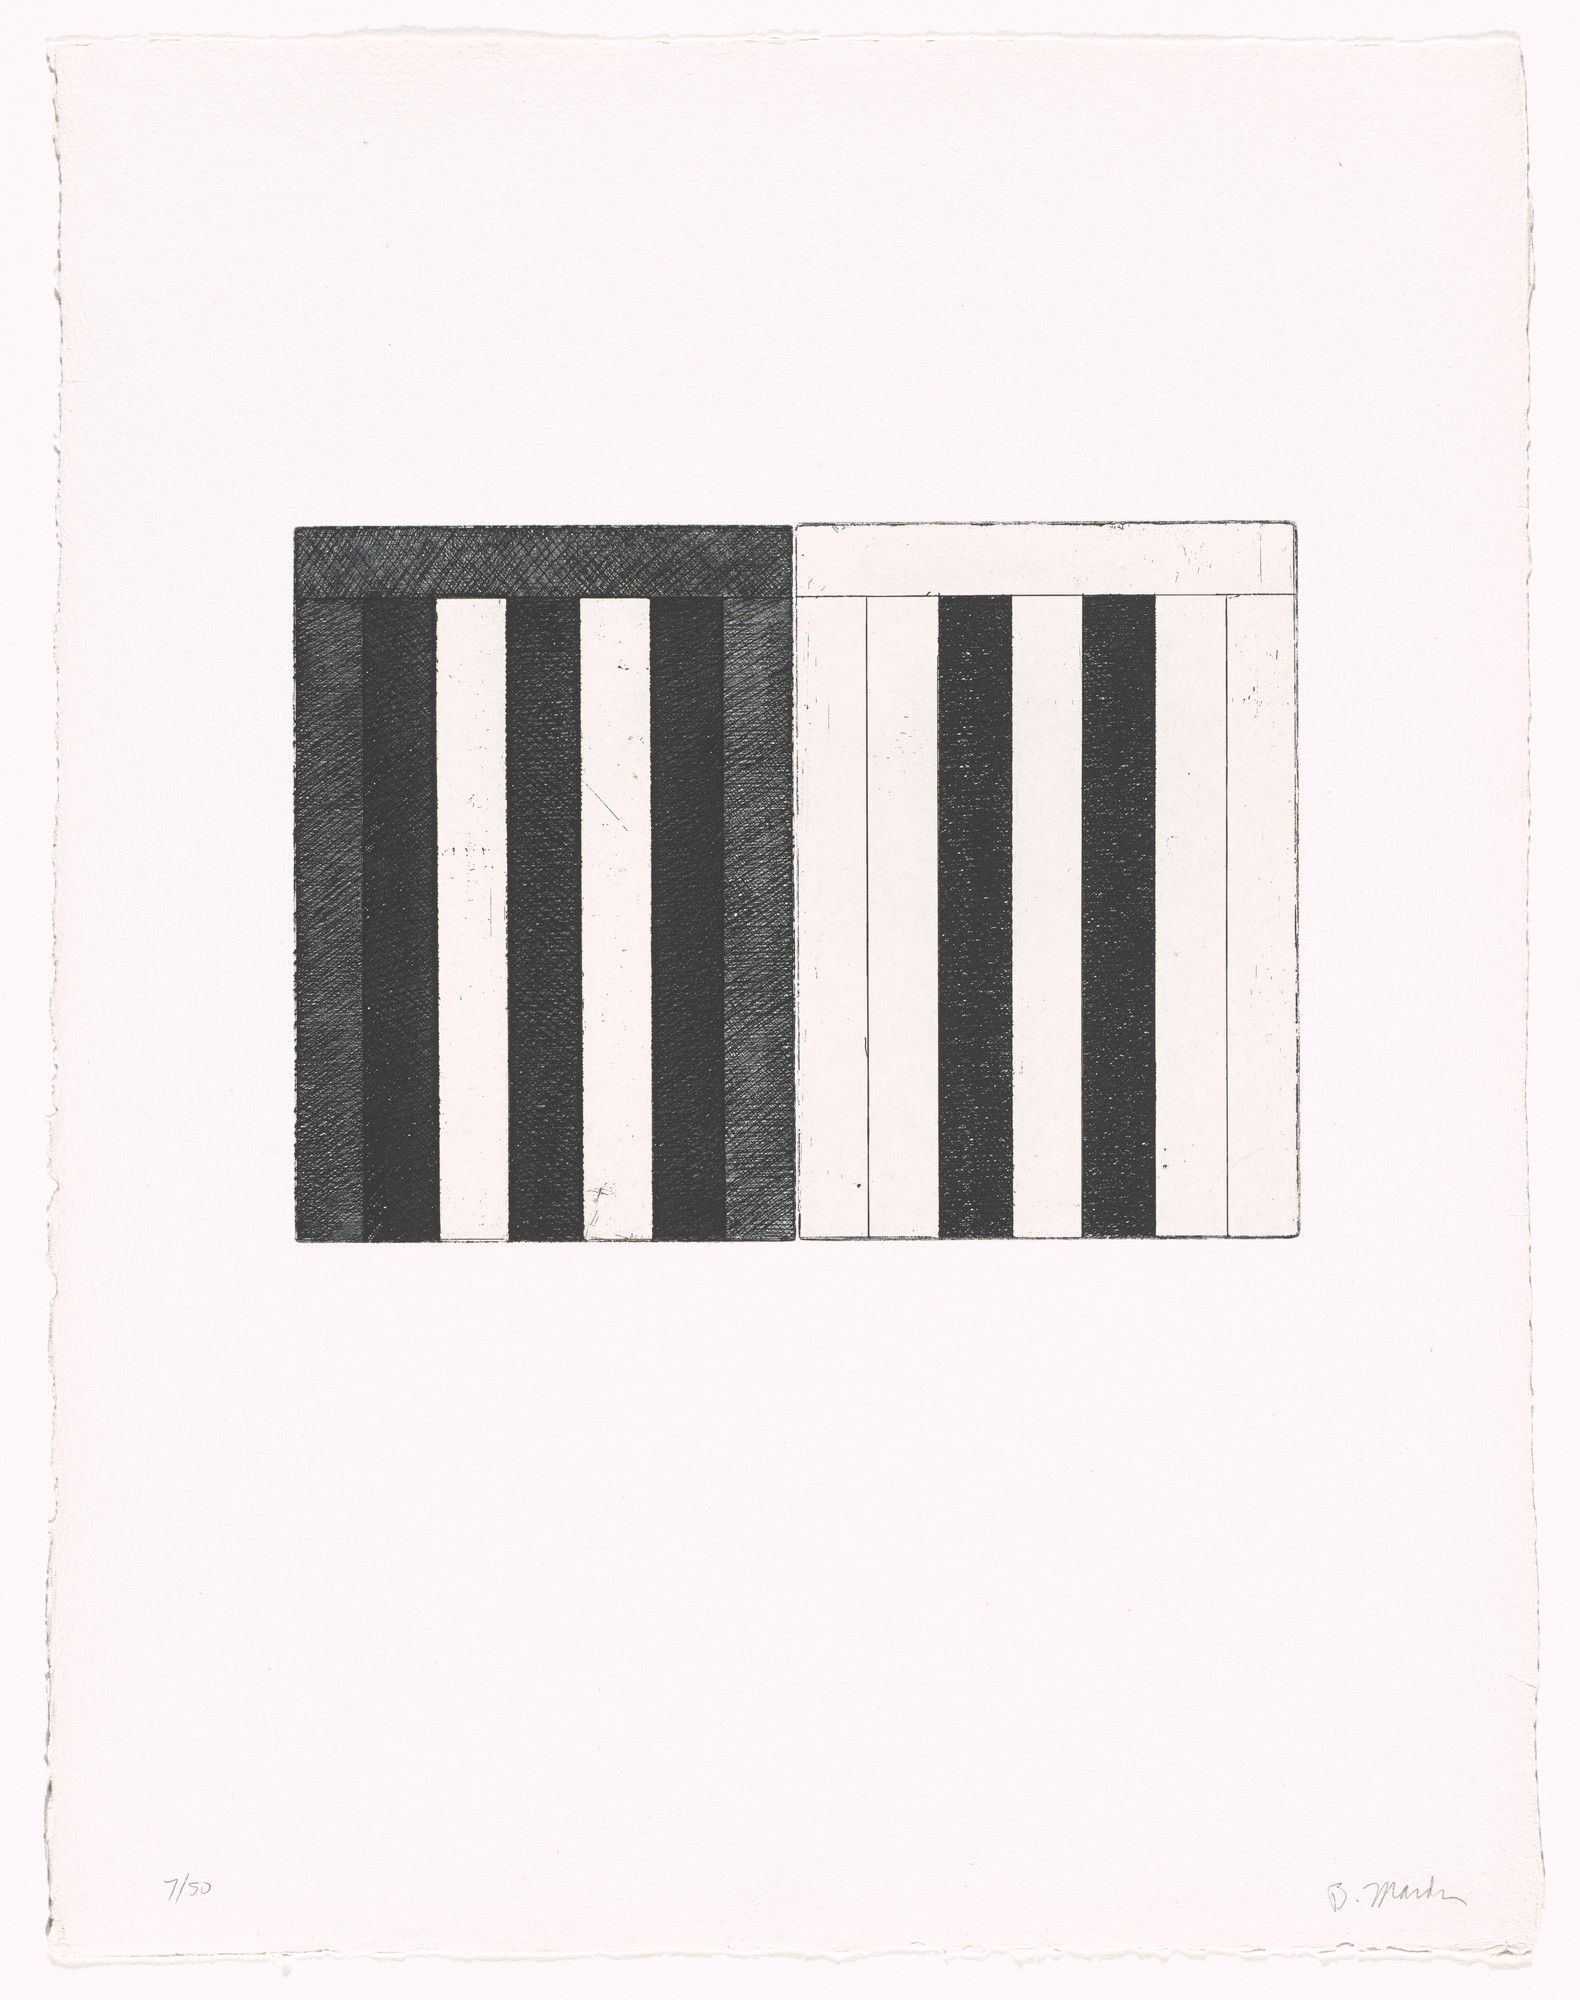 Brice Marden, Doris Simmelink. Untitled from 12 Views for Caroline Tatyana. 1977–79, published 1989